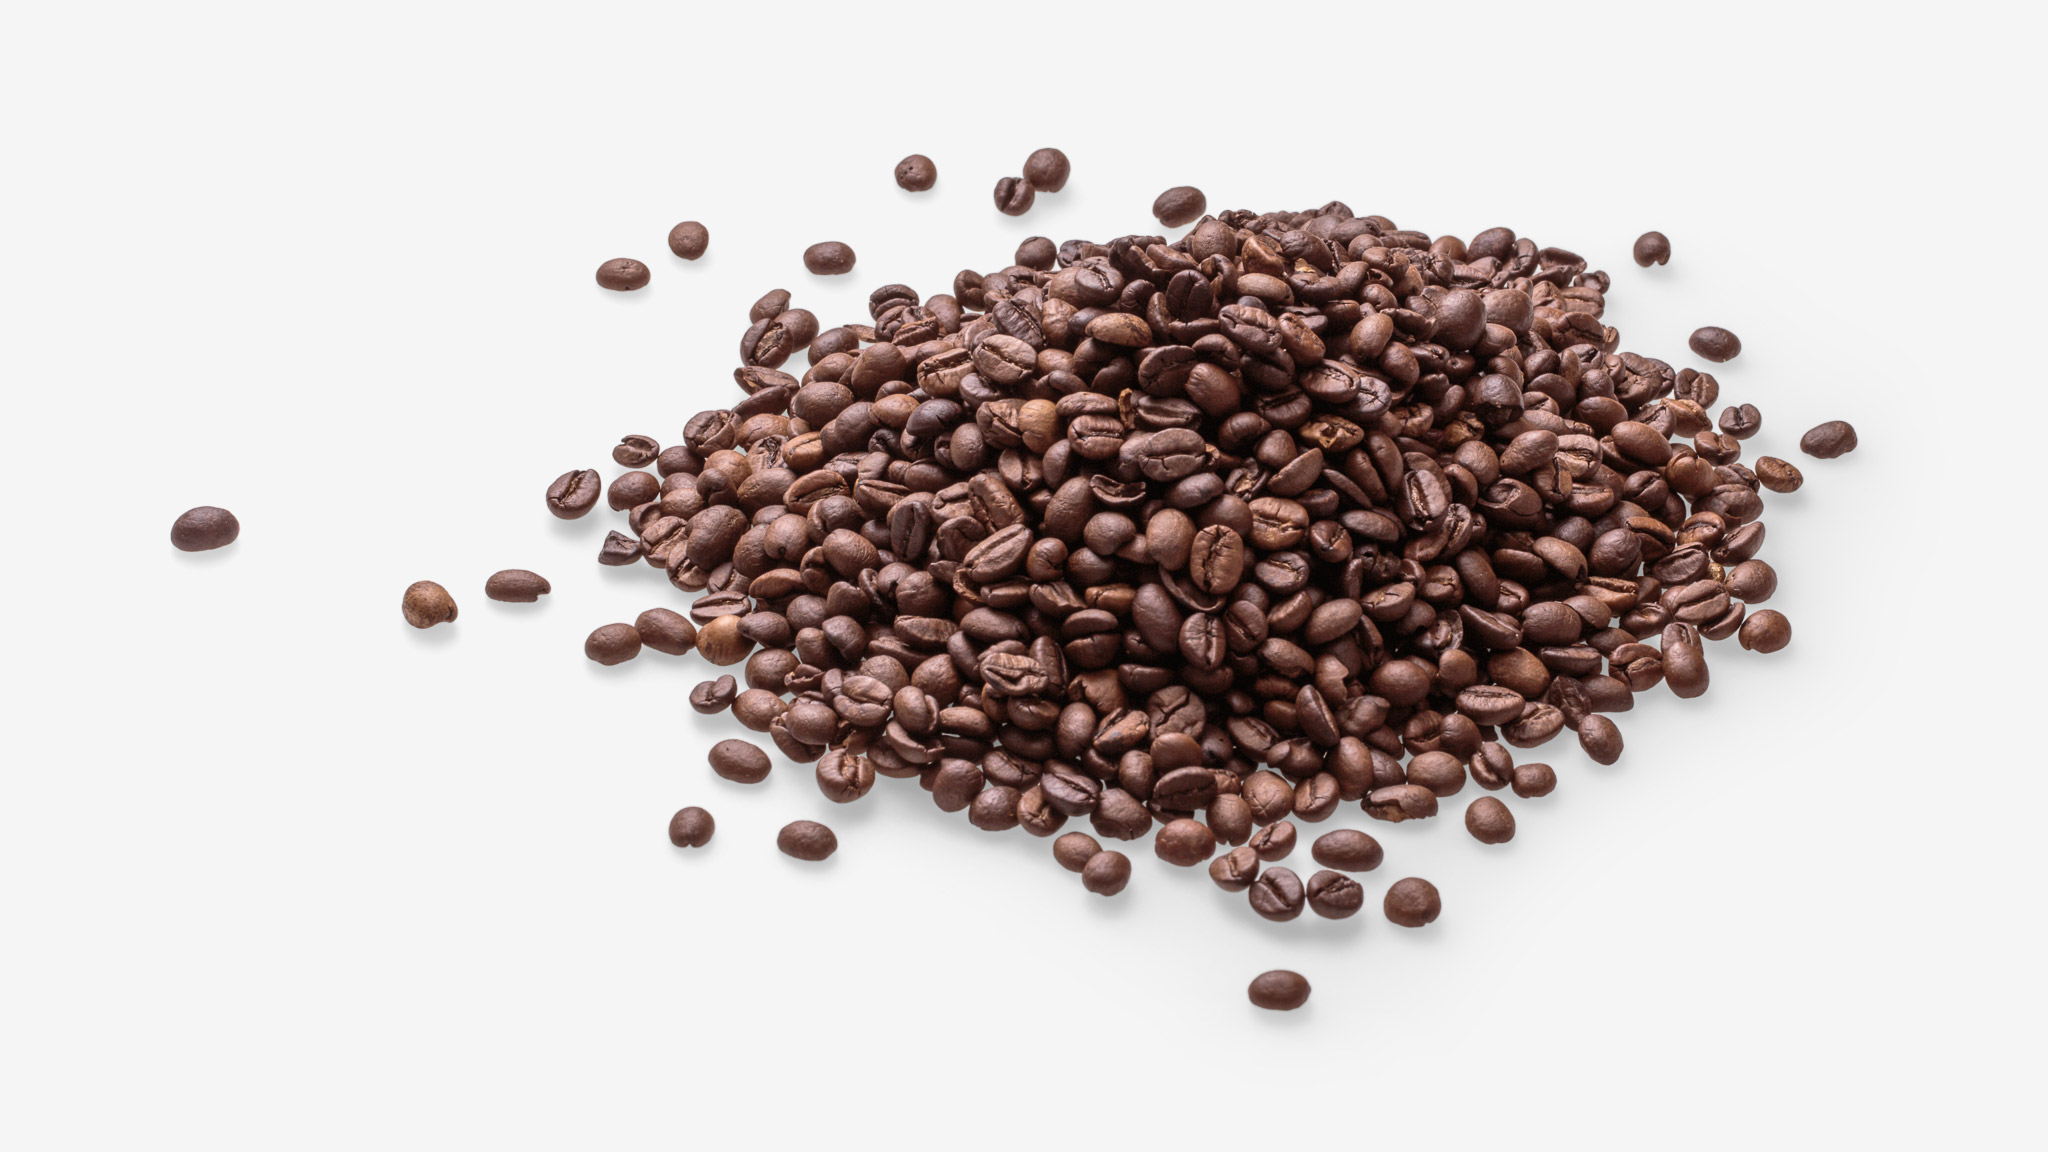 Coffee image with transparent background